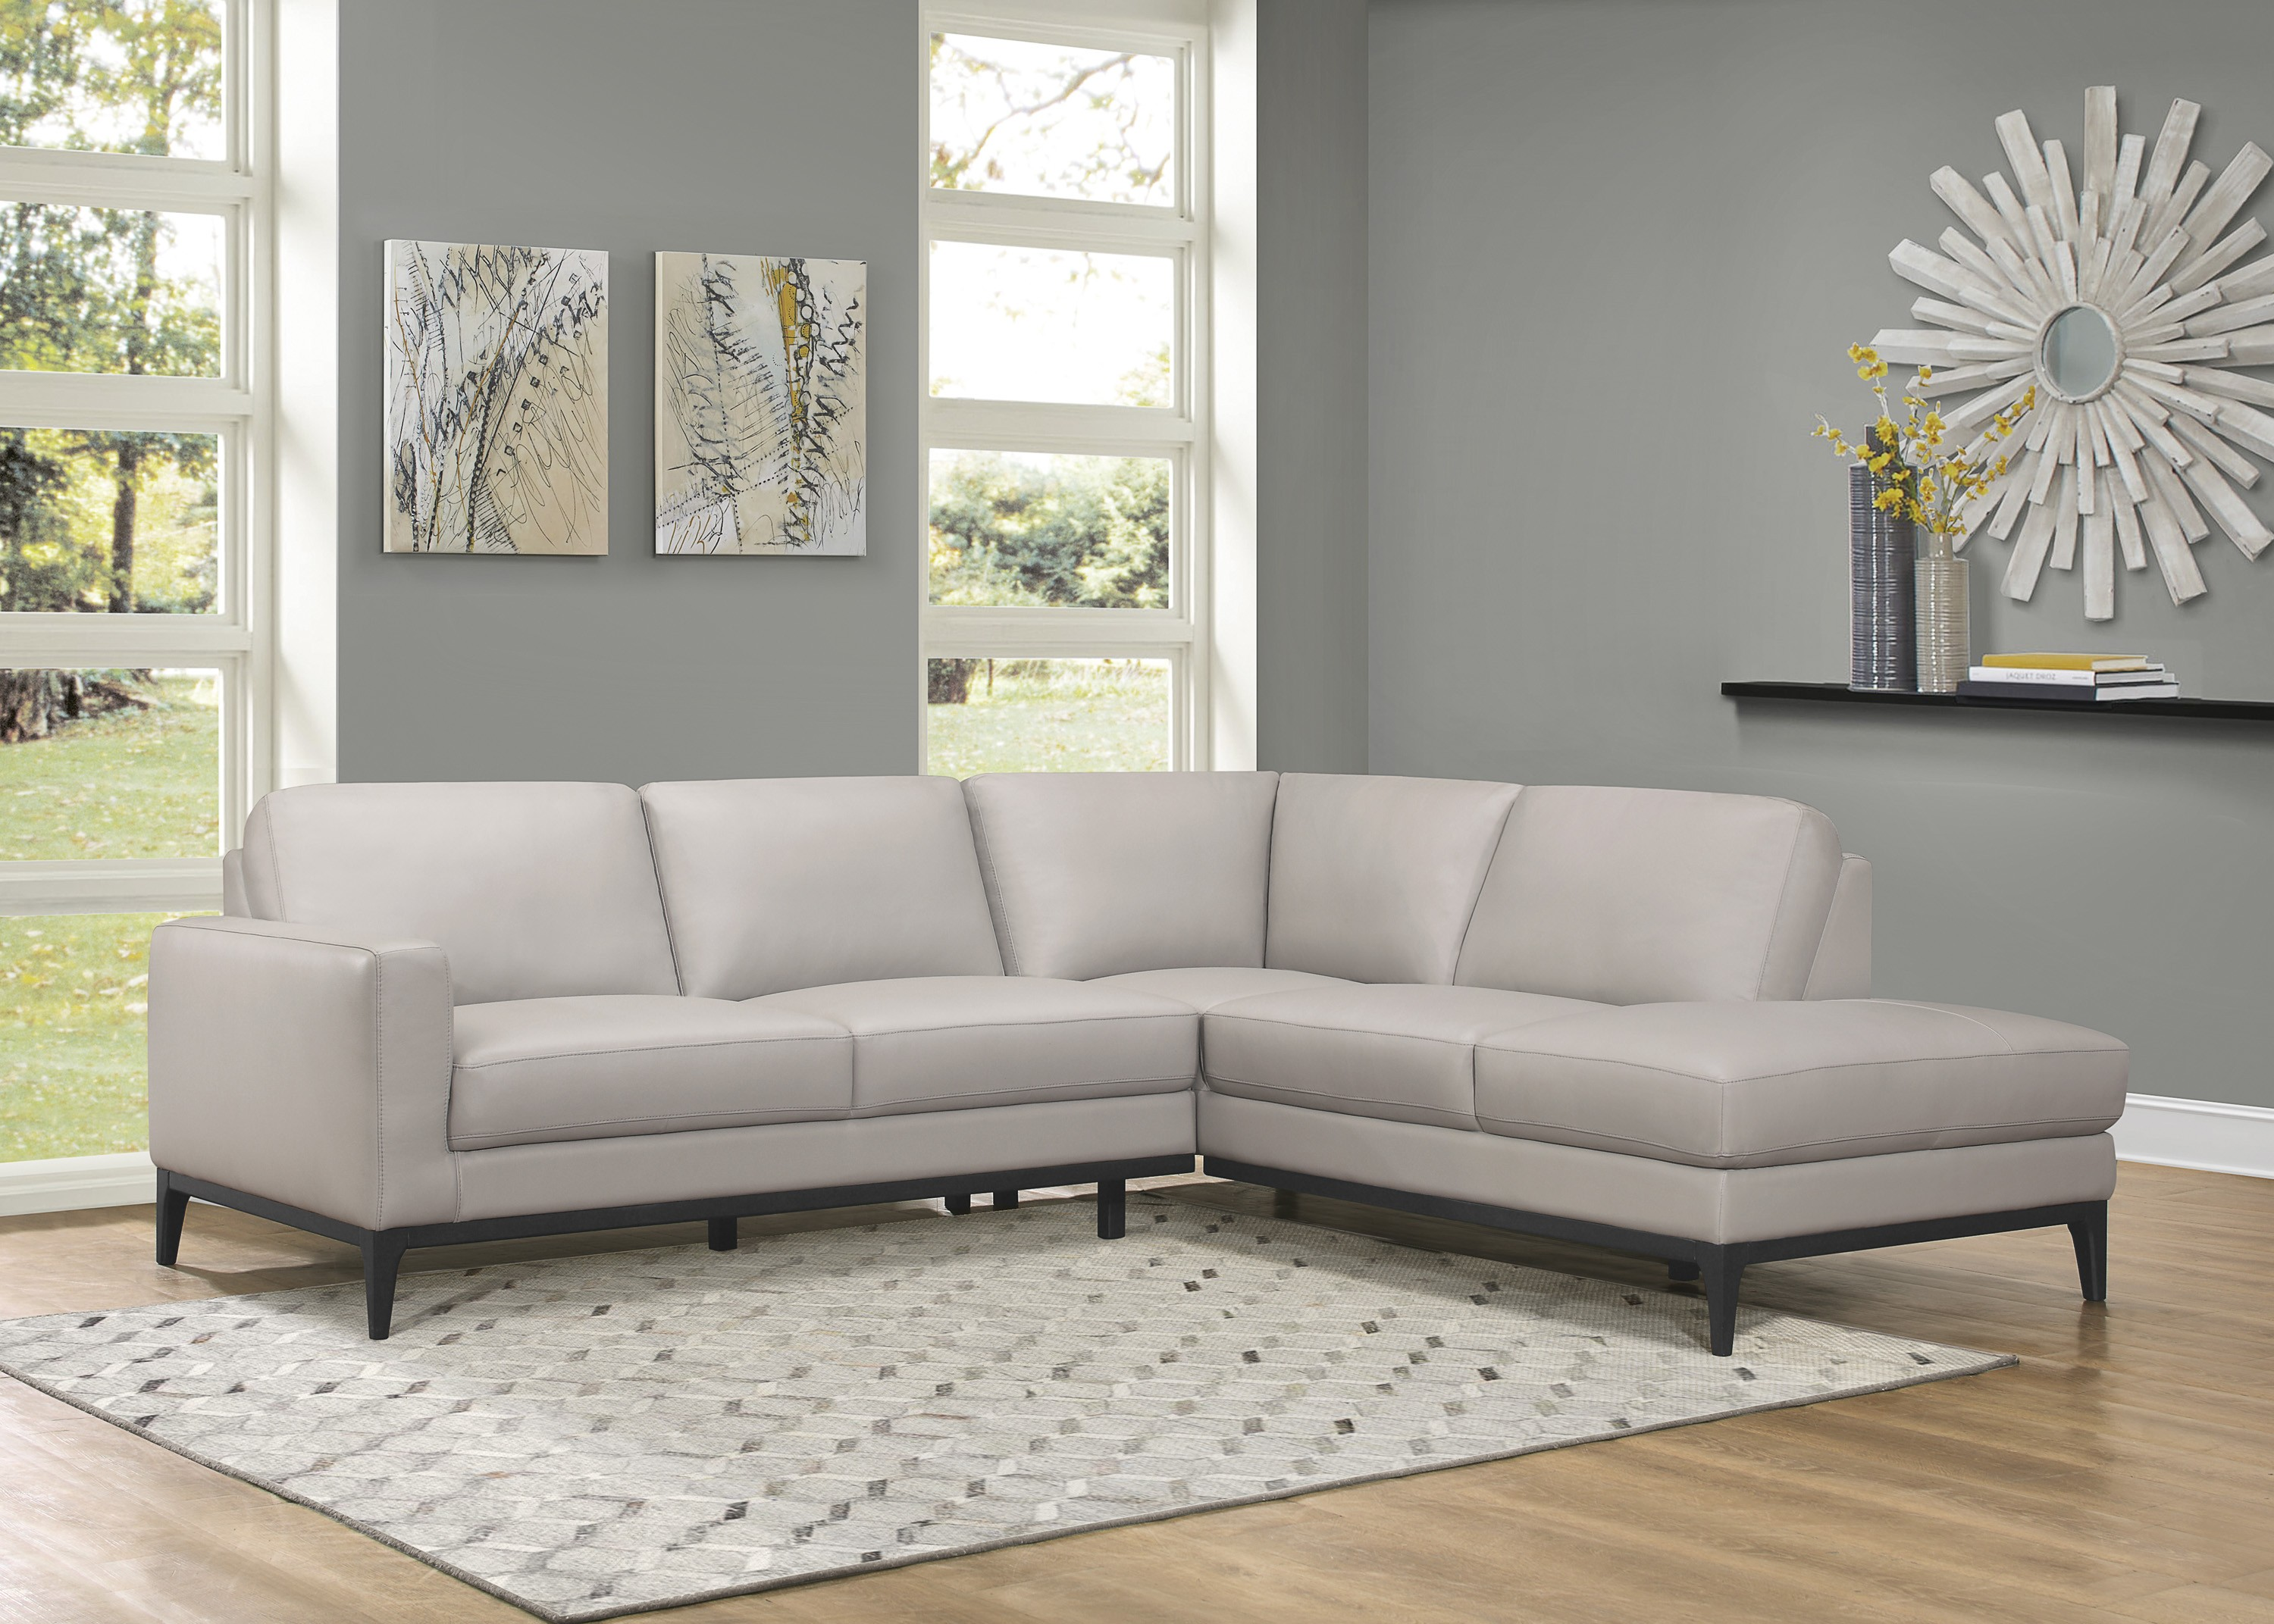 Nico Light Grey Top Grain Leather Sectional Las Vegas Furniture Store Modern Home Furniture Cornerstone Furniture